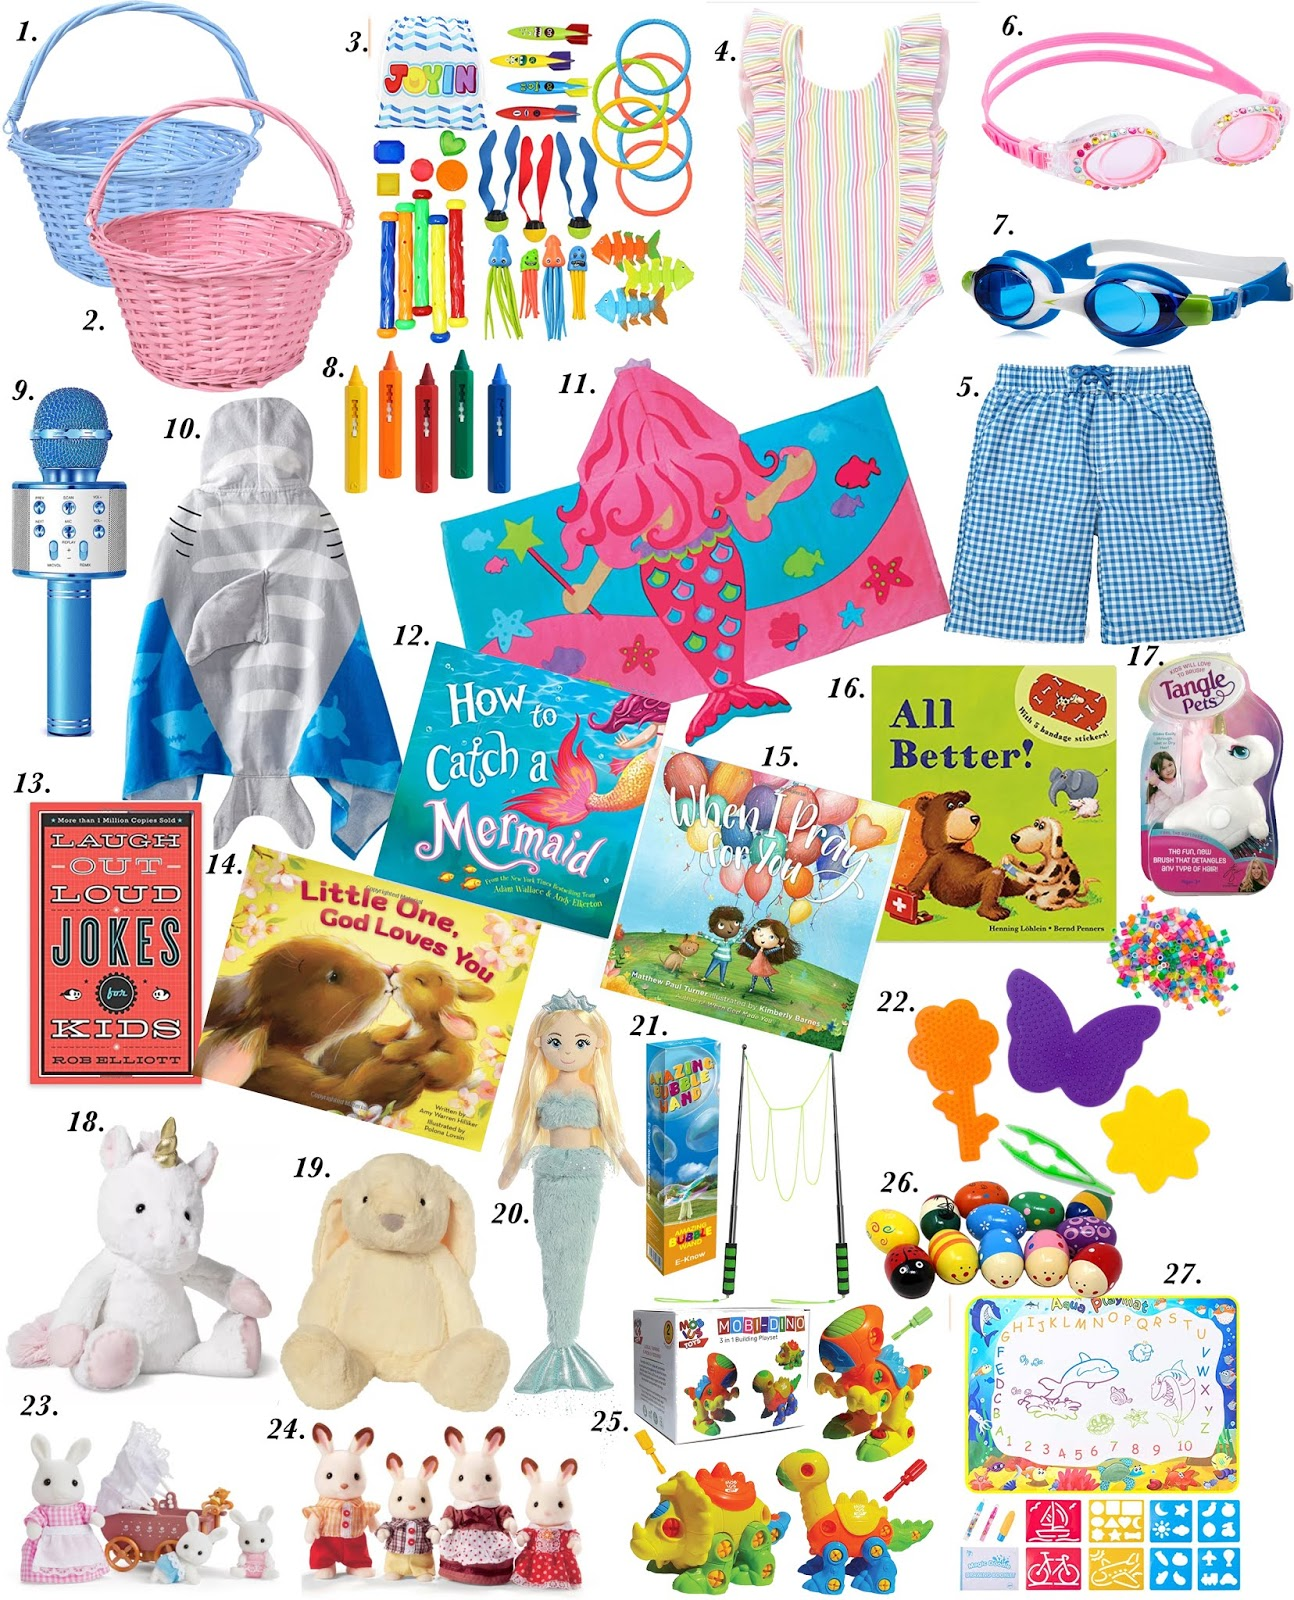 Easter Basket Ideas for Kids - Something Delightful Blog #EasterBasketIdeas #StayHome #PrimeEasterFinds #TargetDriveUpEaster